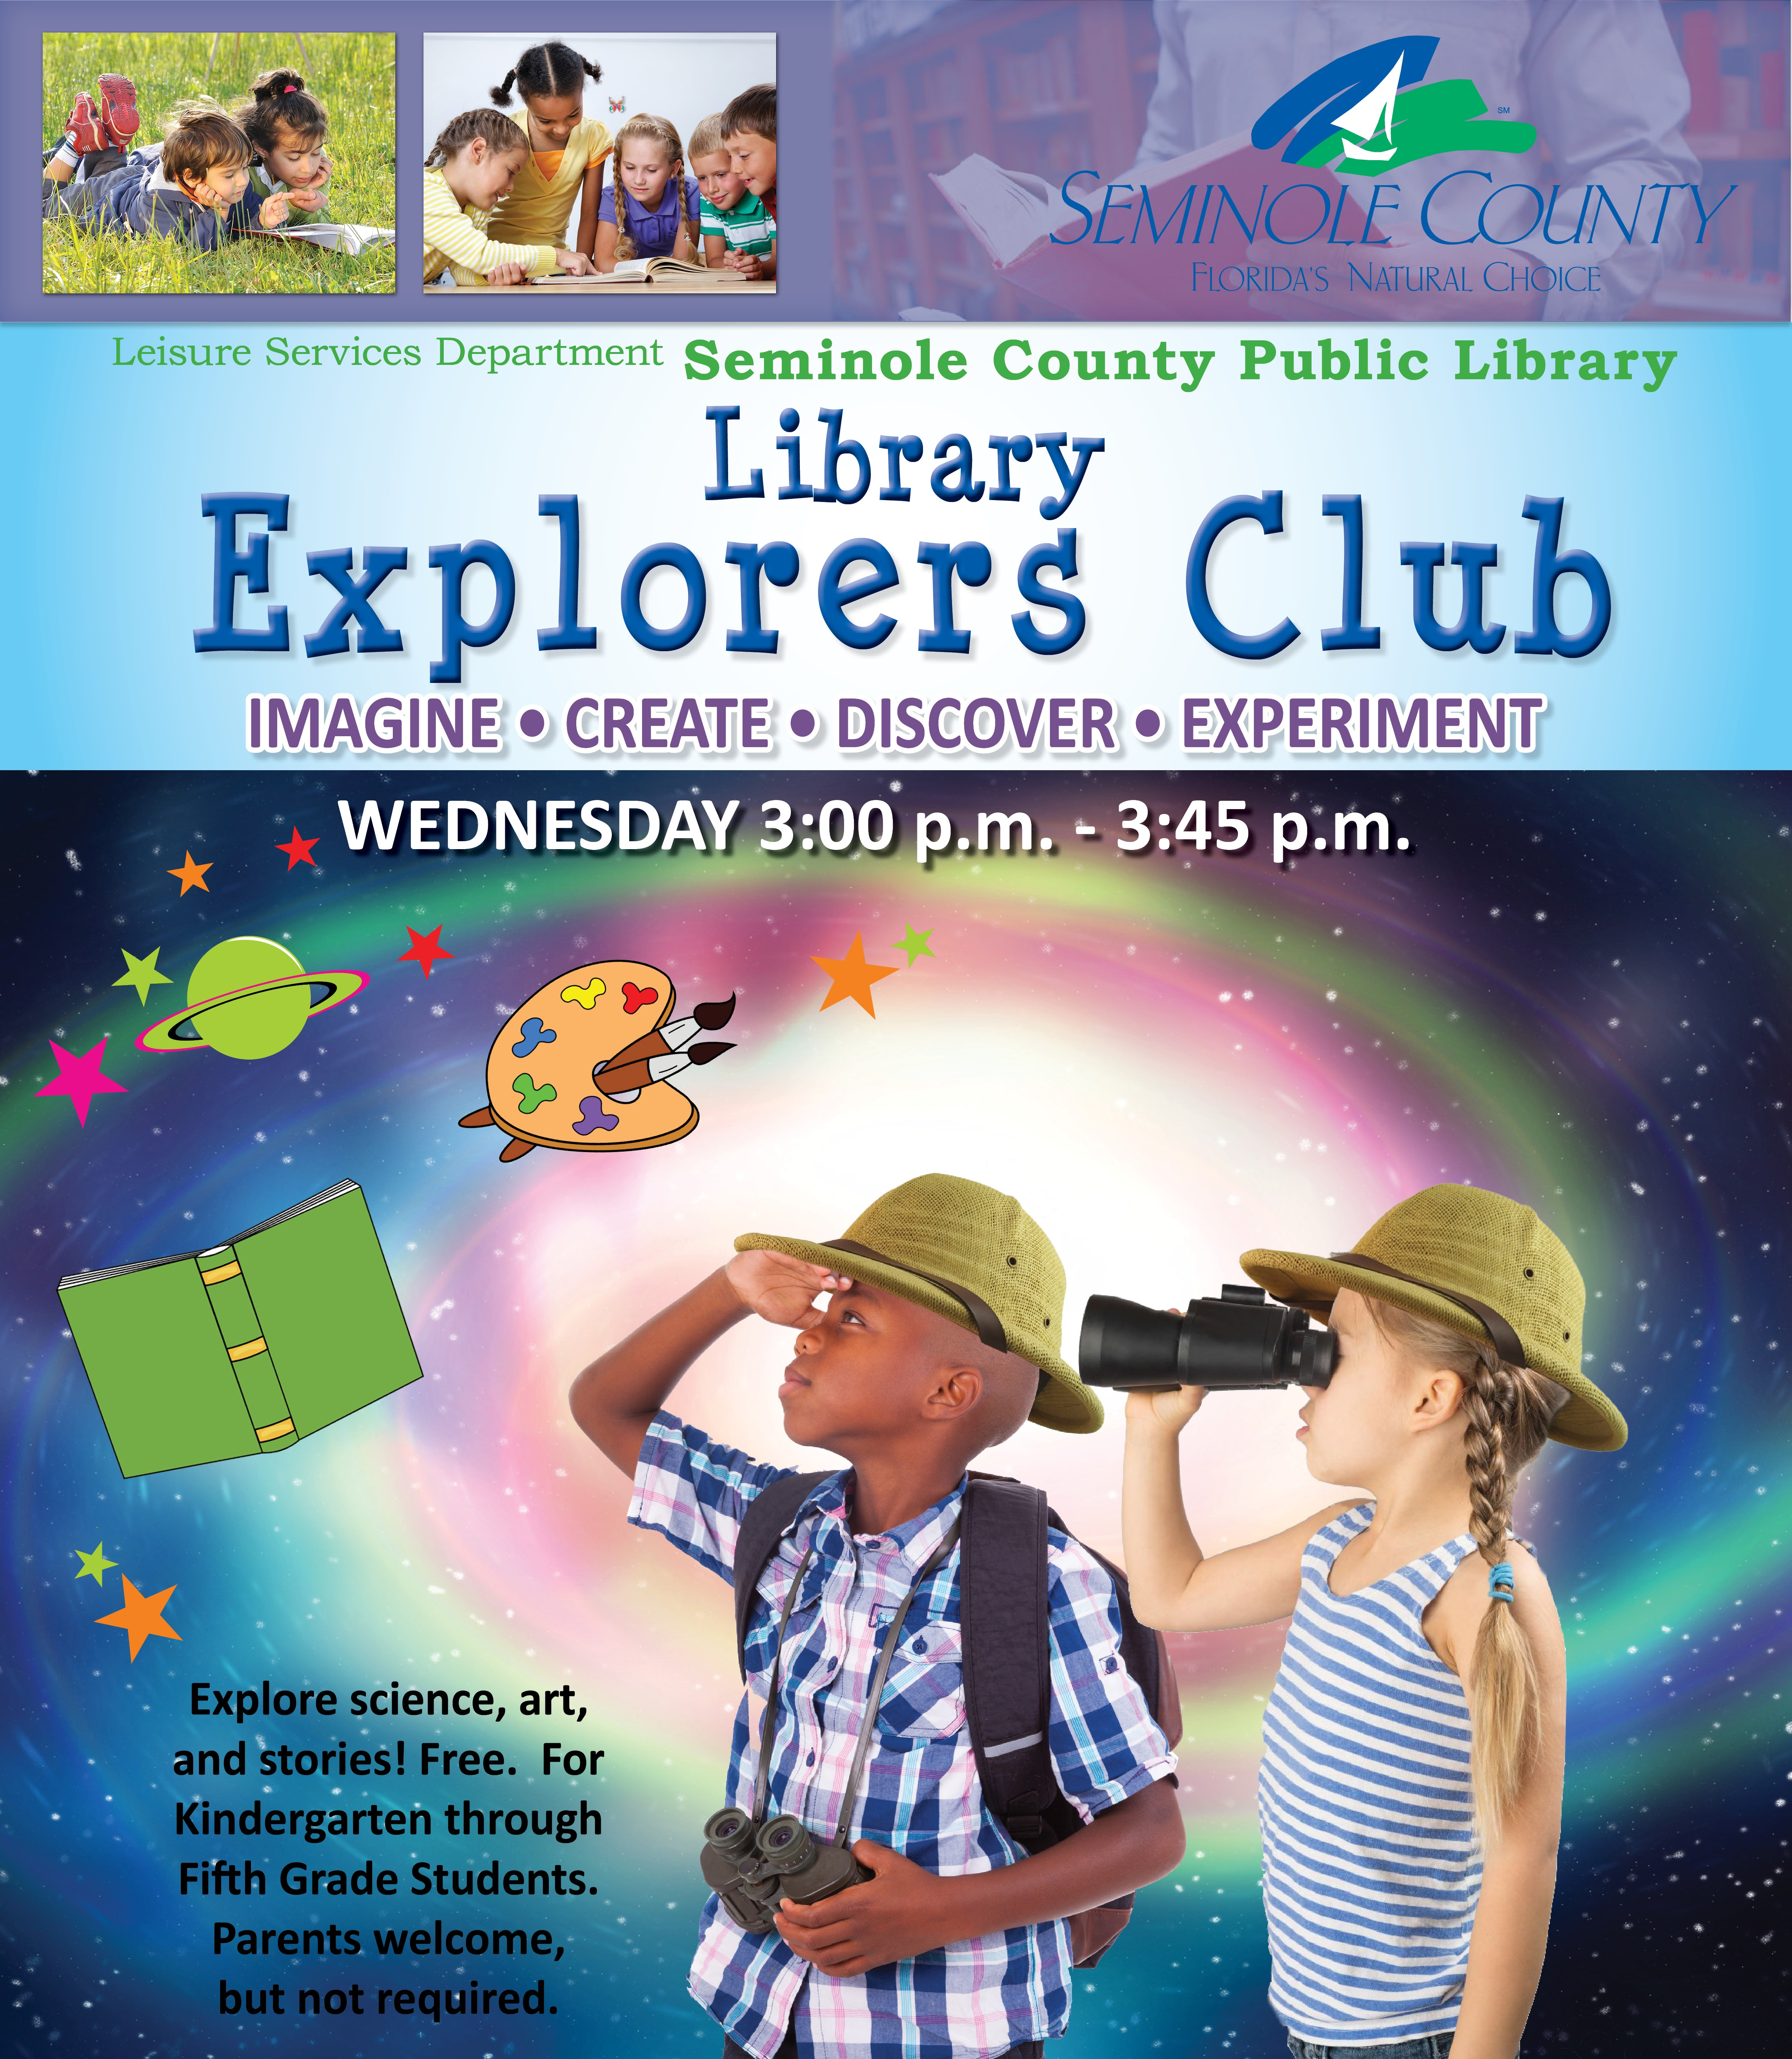 Explorers Club at the library @ Oviedo library | Oviedo | Florida | United States